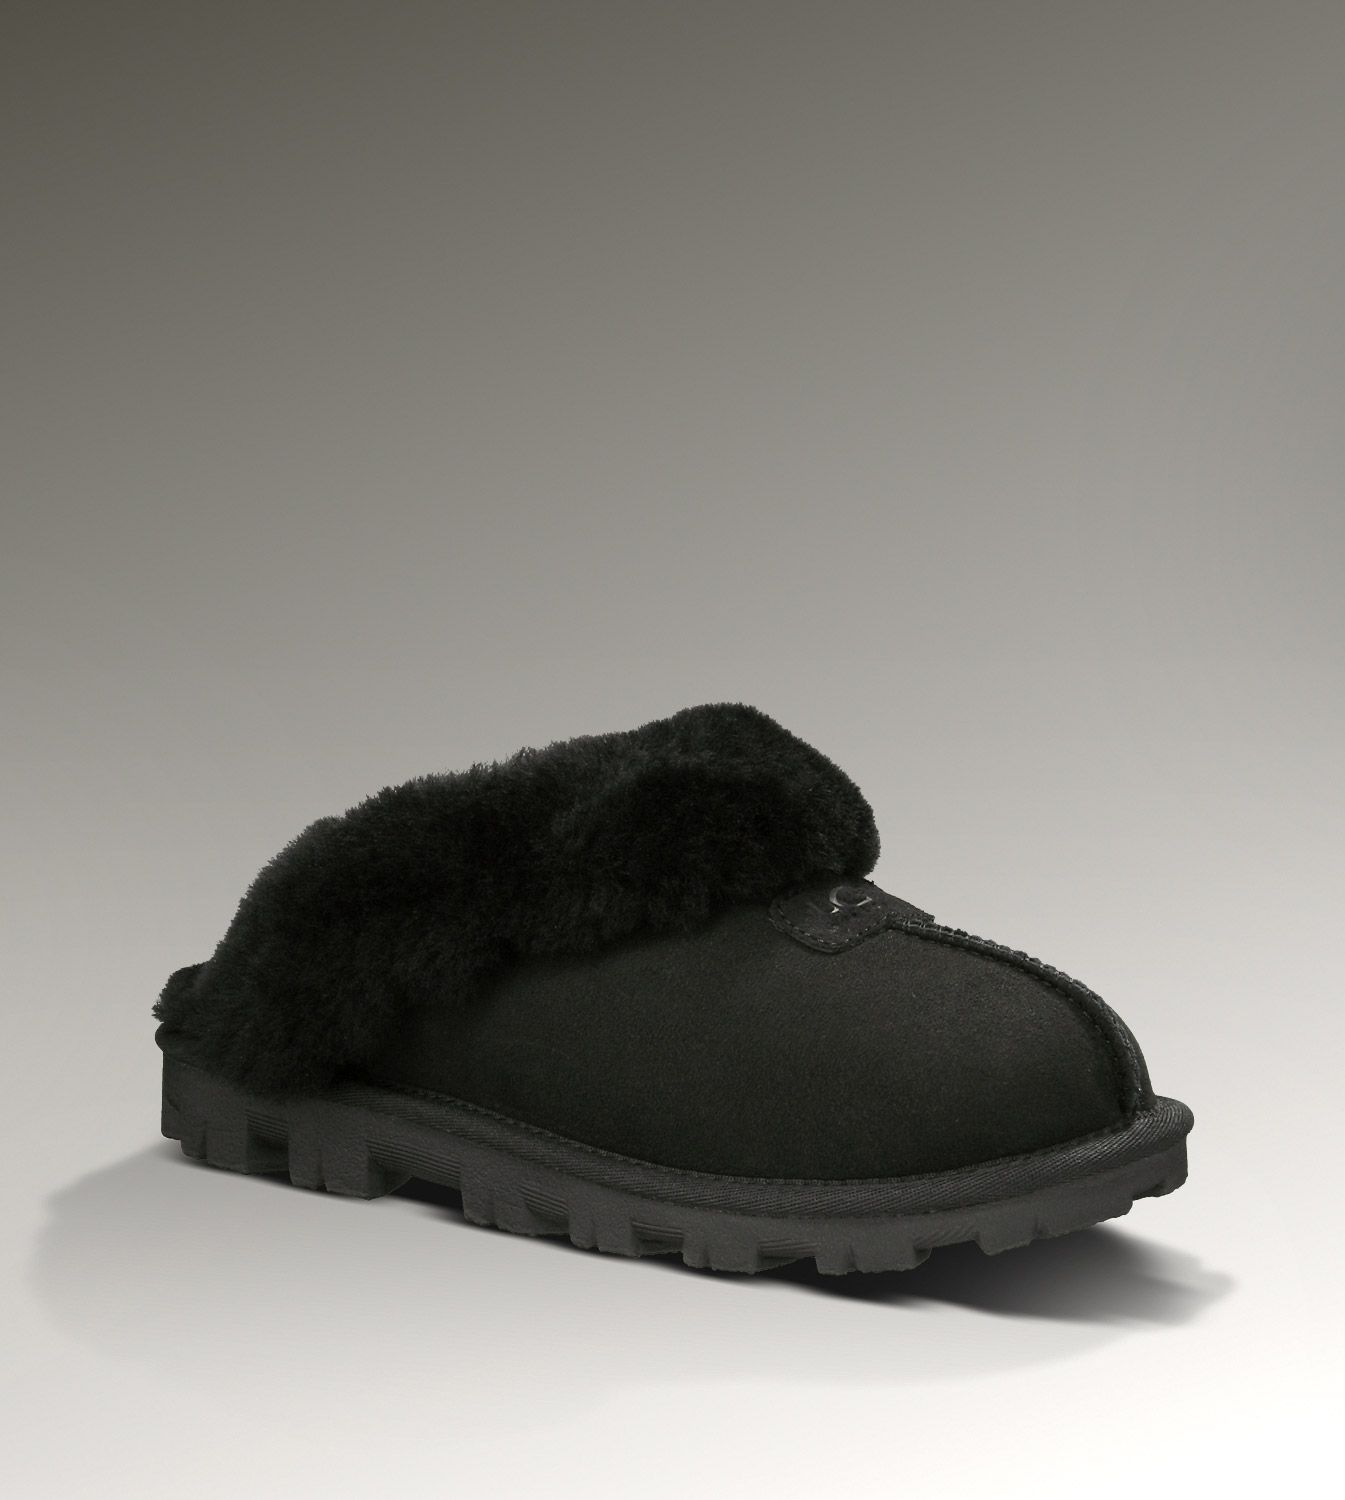 Ugg Coquette 5125 Slippers - love these slippers, I would wear them out